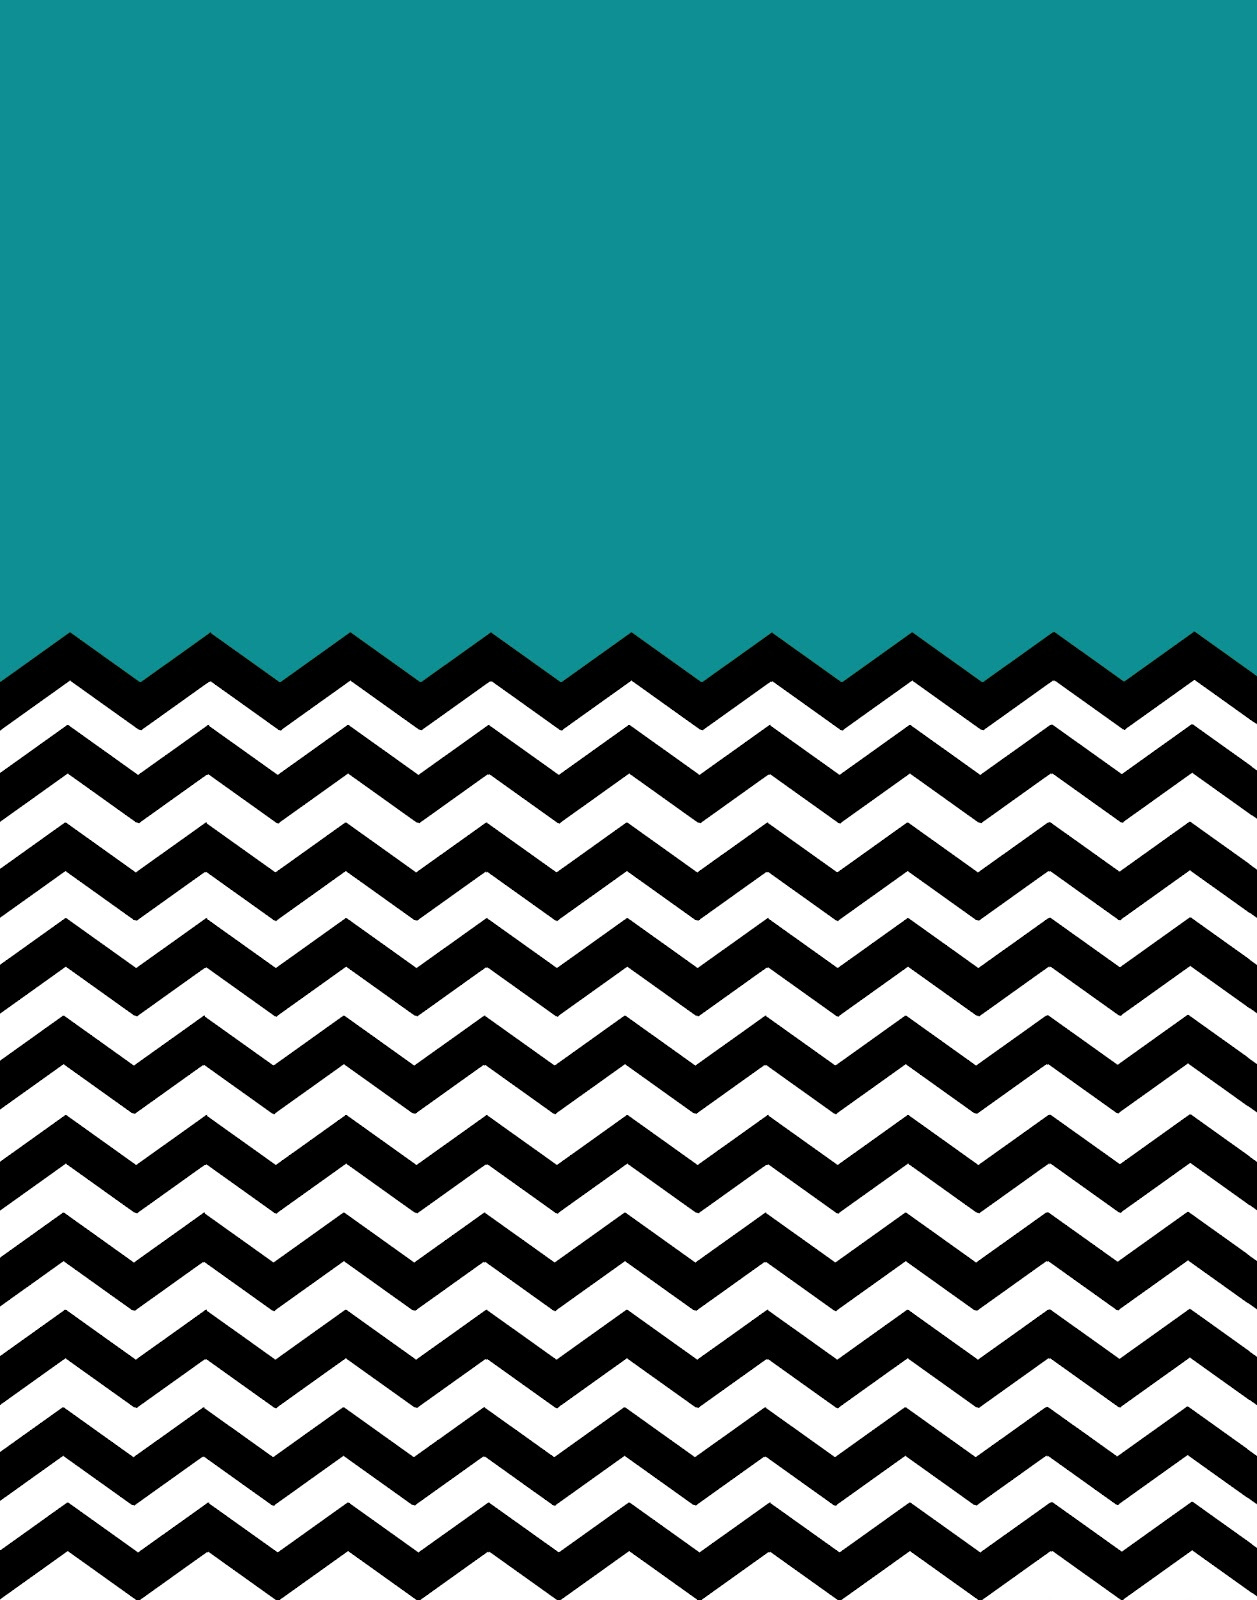 Blue chevron wallpaper wallpapersafari for Teal chevron wallpaper